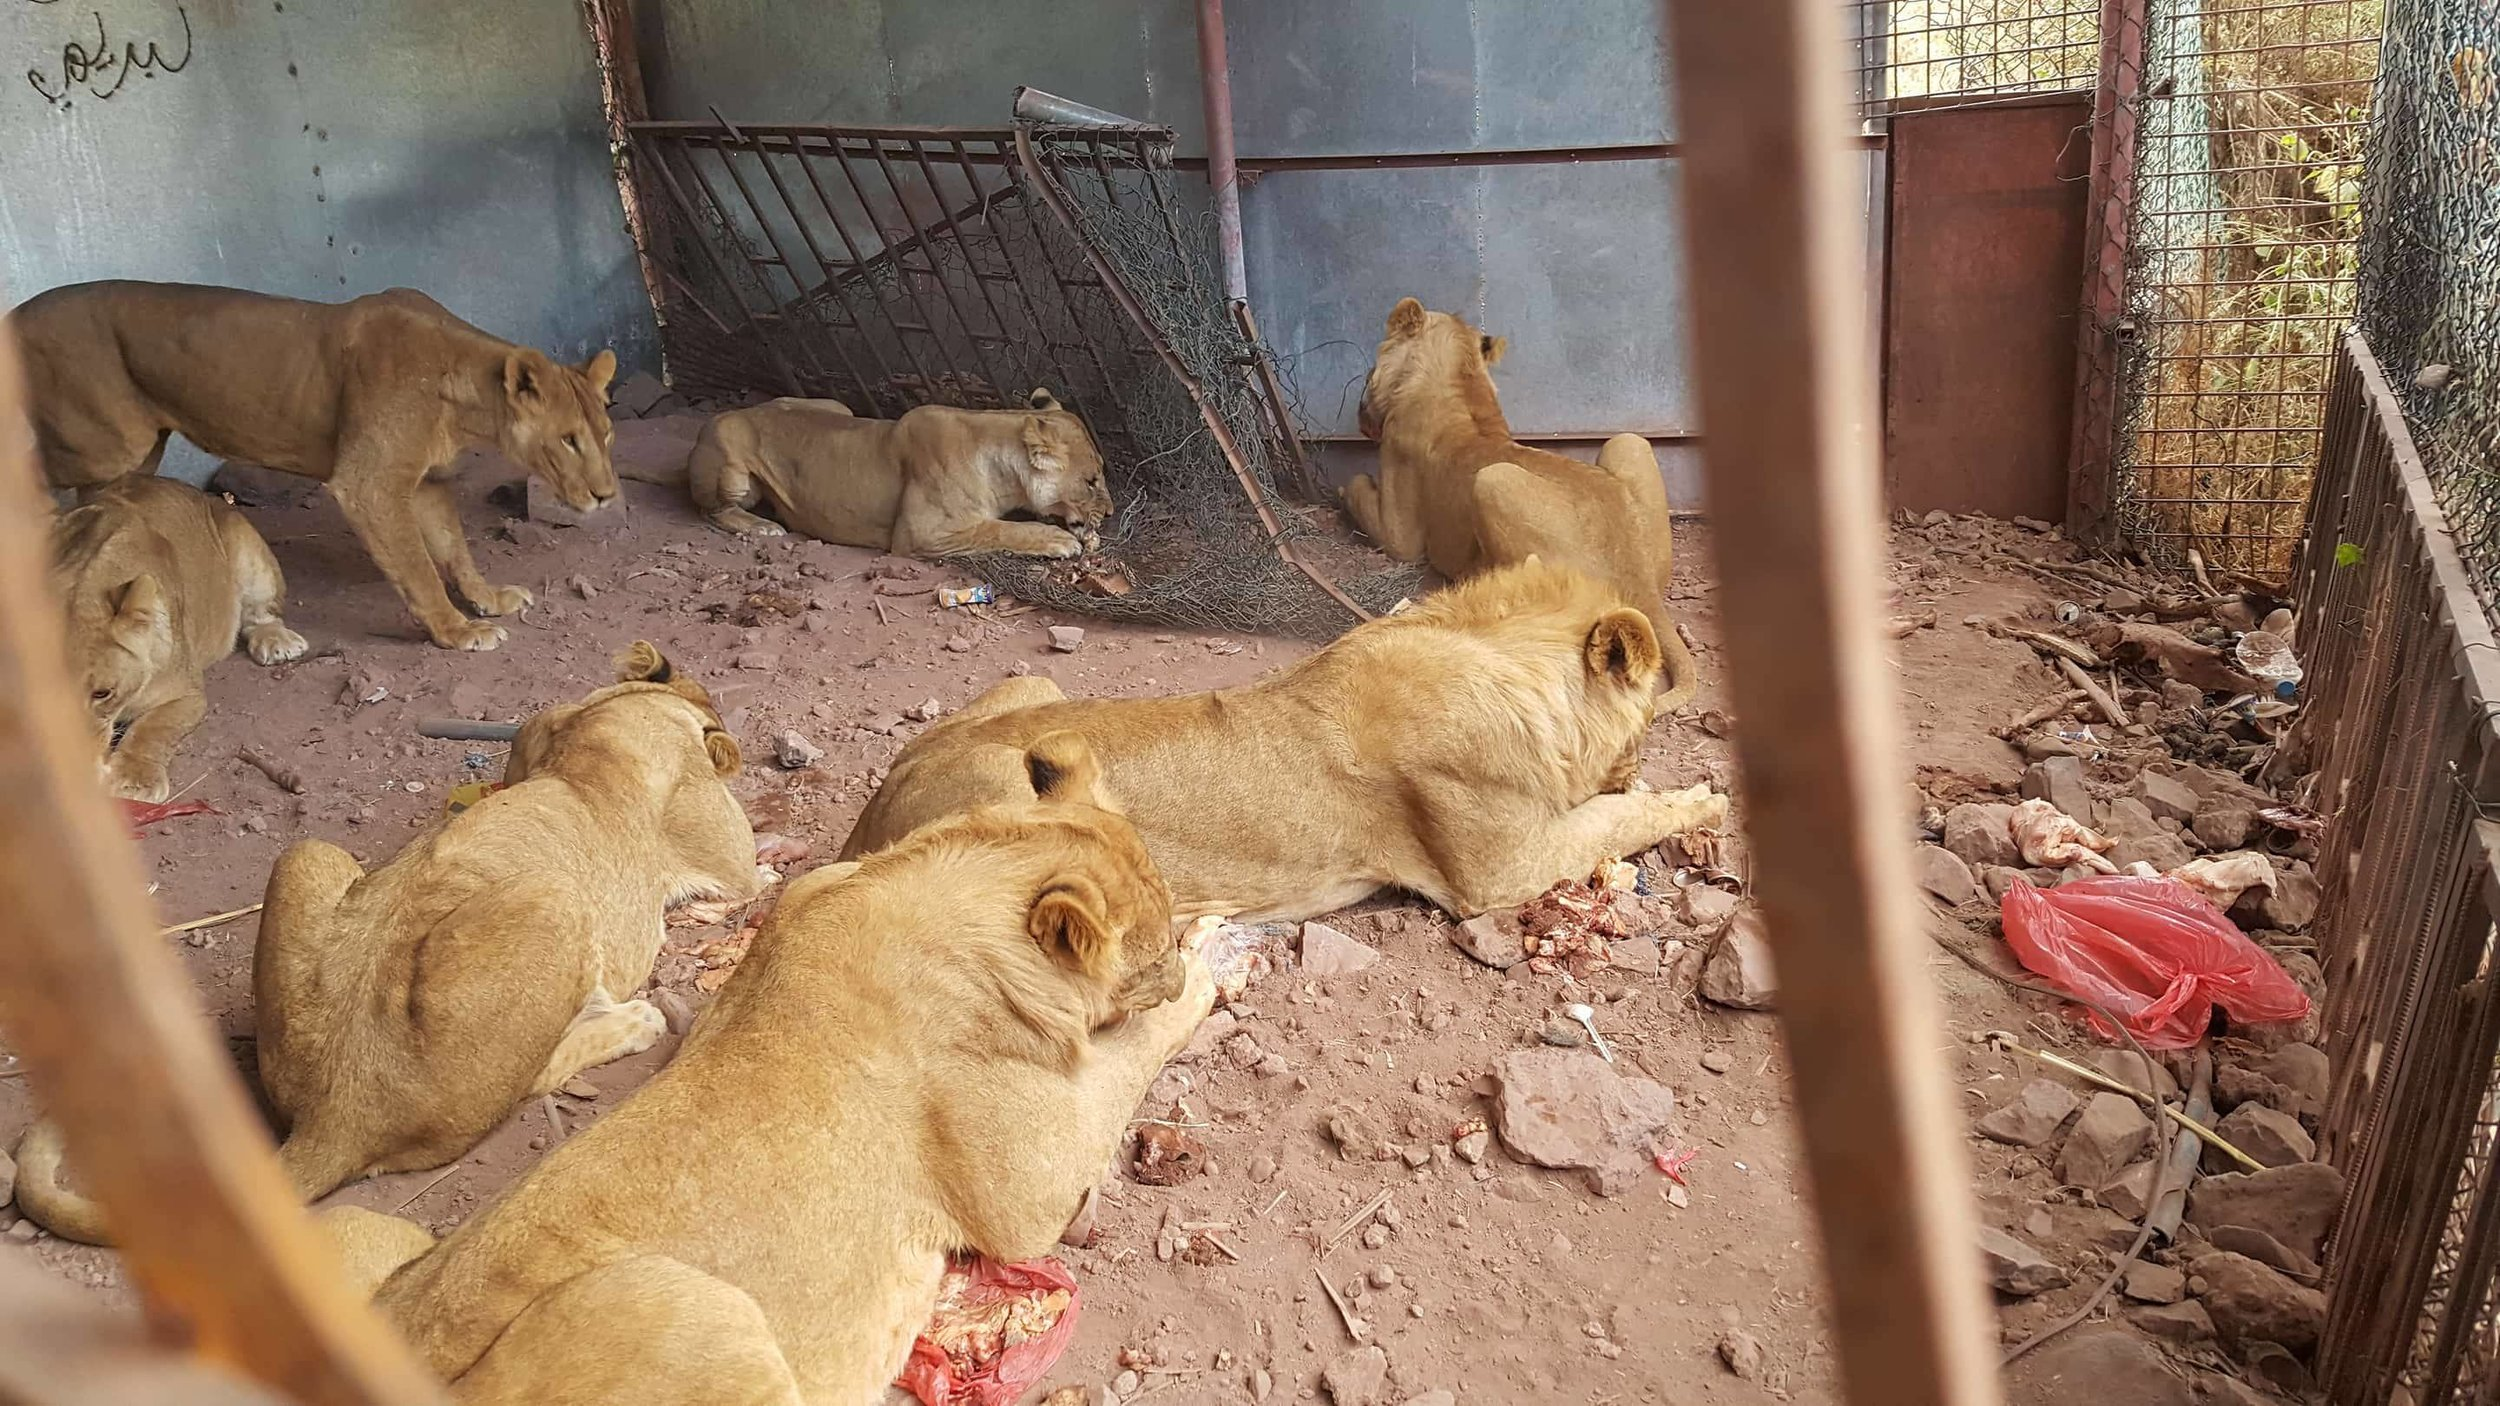 Ibb Zoo lions with our meat 29 DEC 2017 OWAPAR Salman photo Yemen rescue.jpg